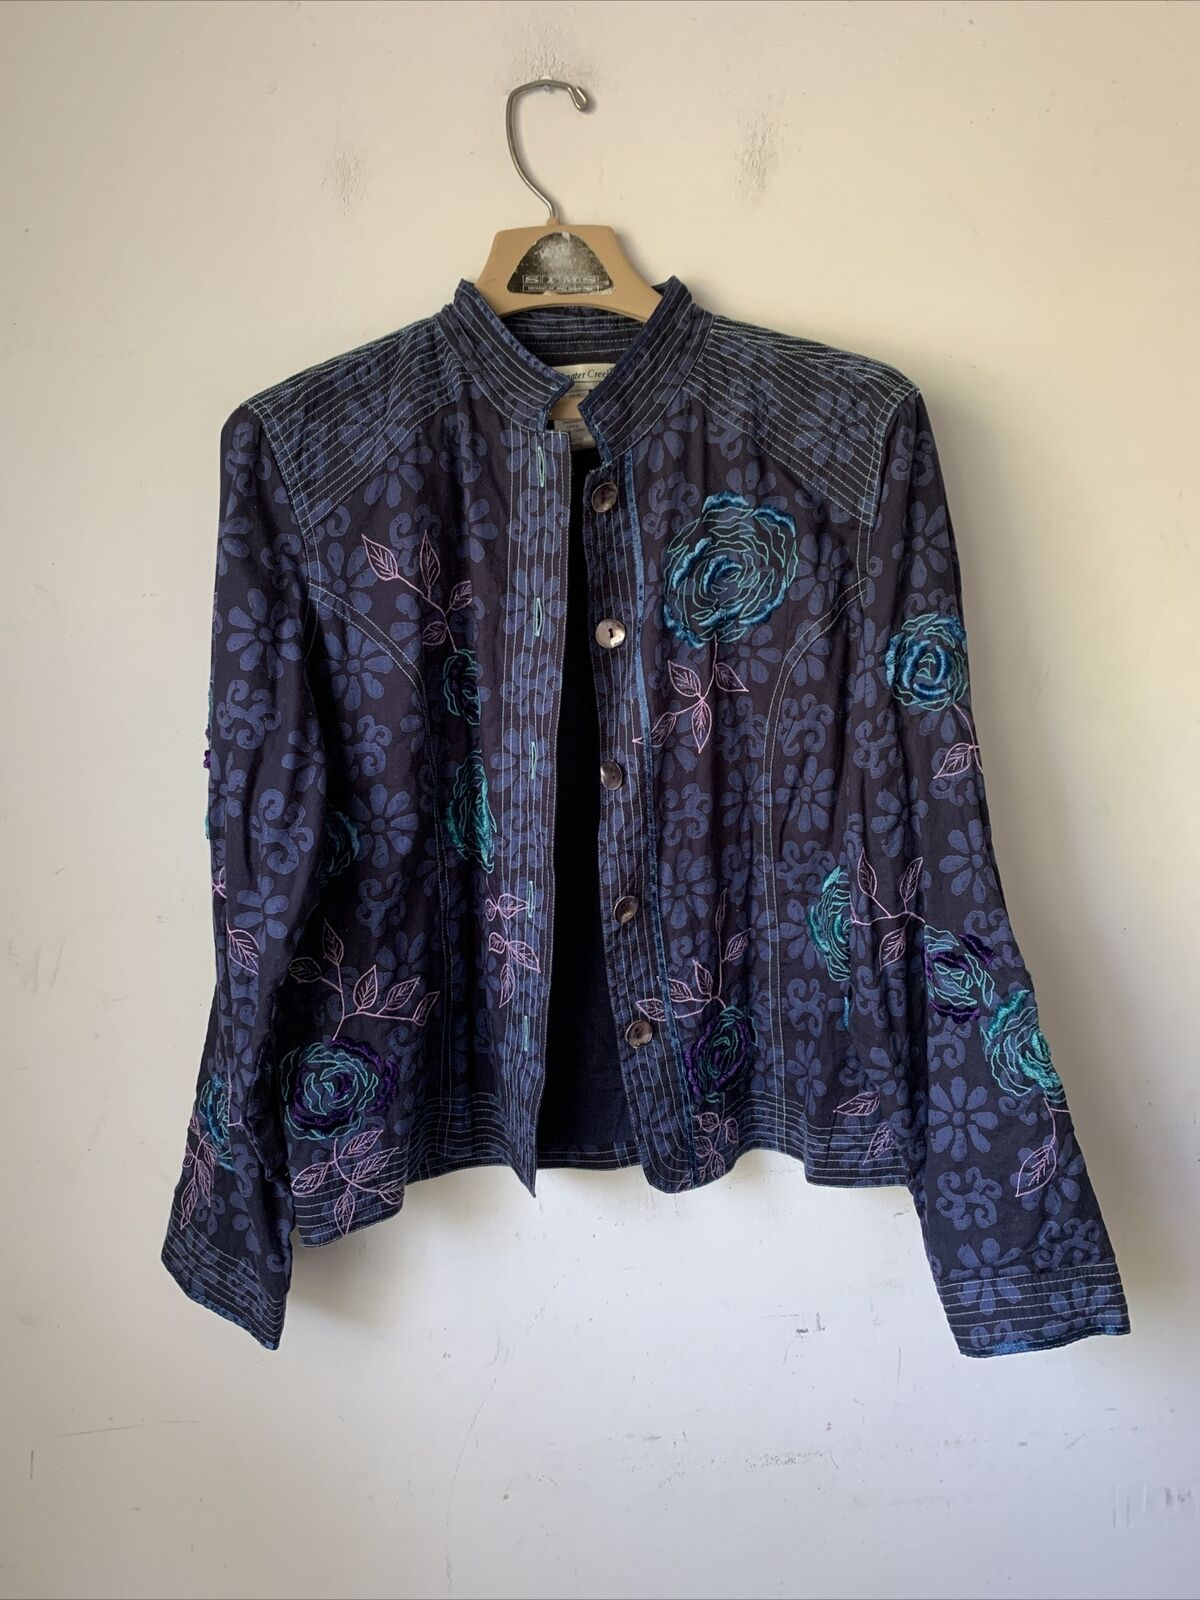 Coldwater Creek Womens Jacket Medium Floral Embroidered Jacquard Purple Blue